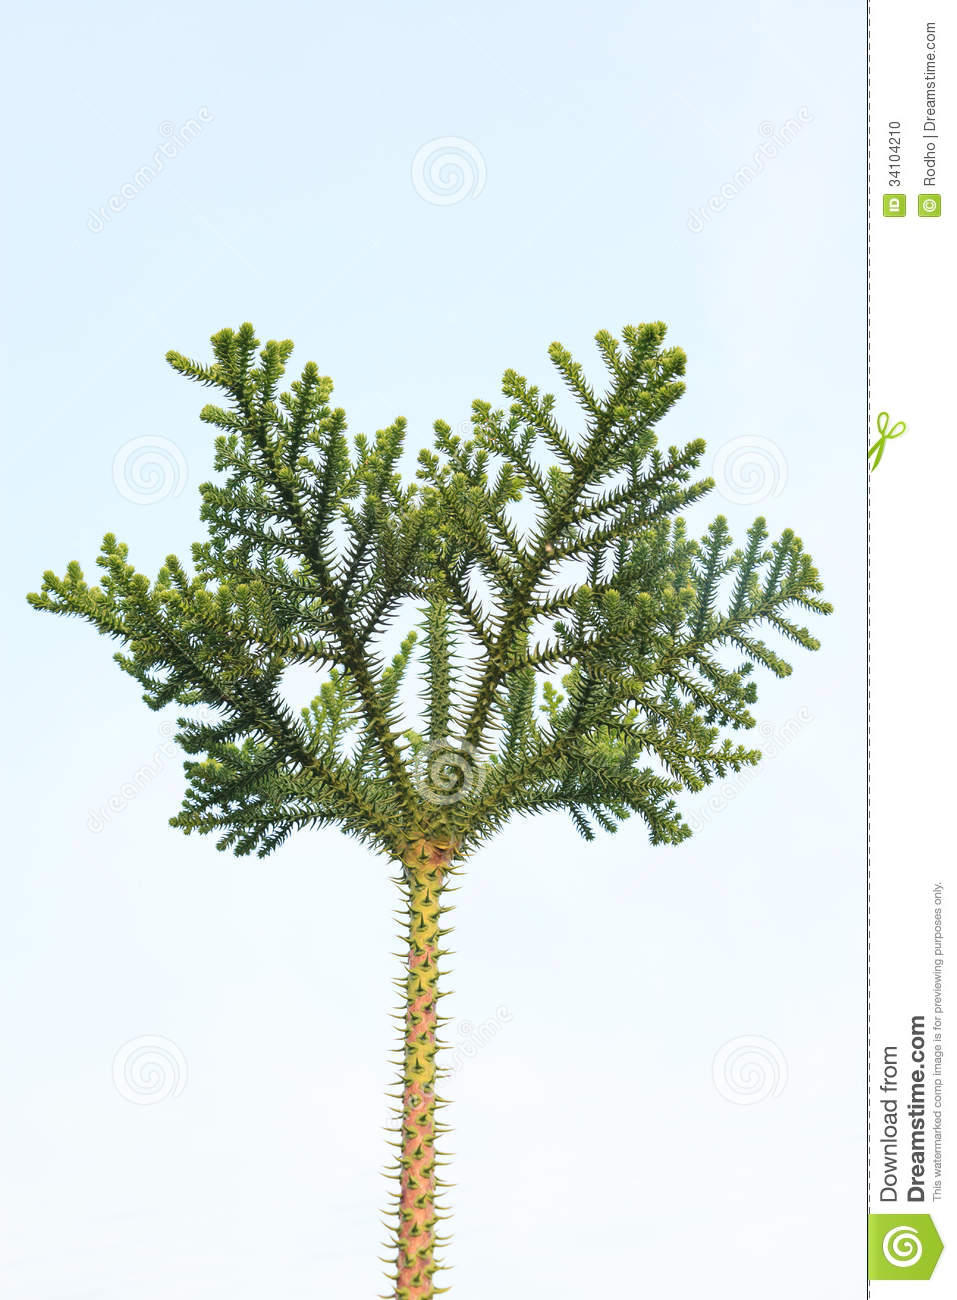 Pine tree crown isolated on the blue sky background